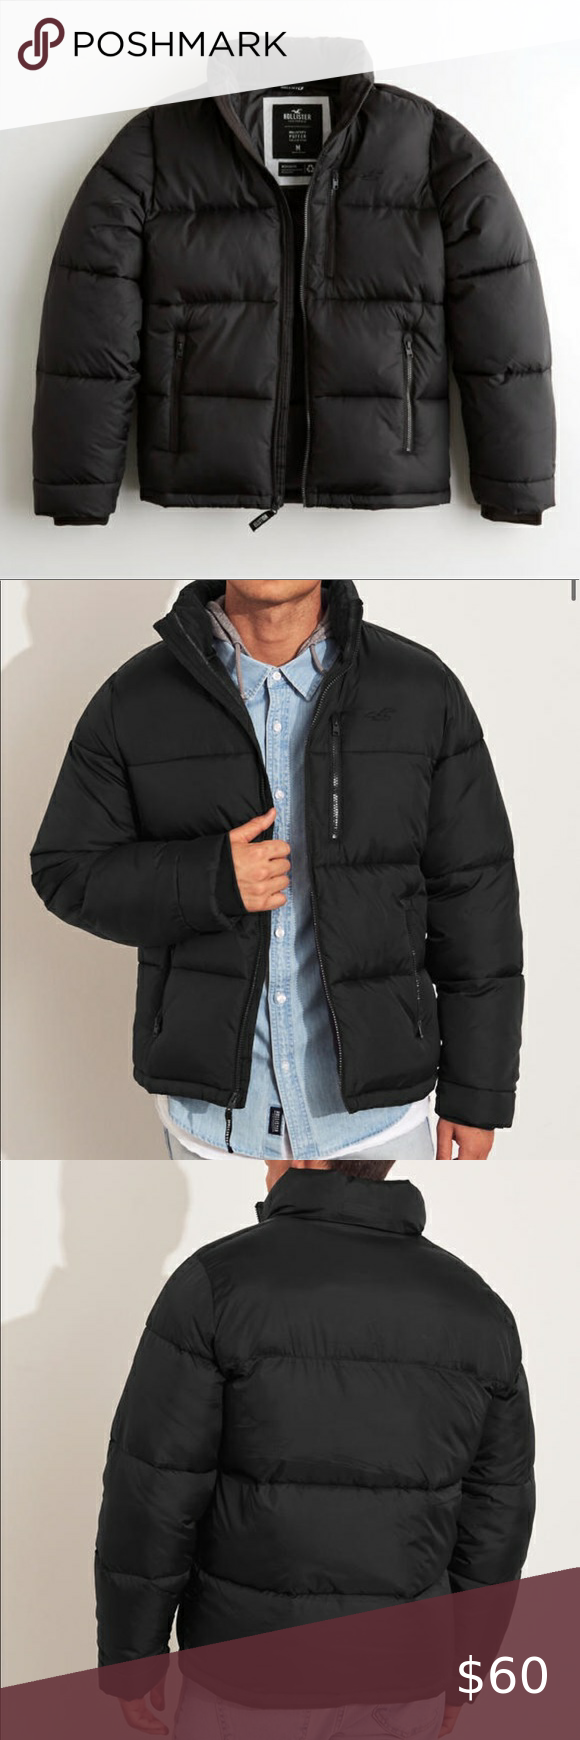 Men S Black Puffer Jacket The North Face Dupe Black Puffer Jacket Black Puffer Jackets [ 1740 x 580 Pixel ]